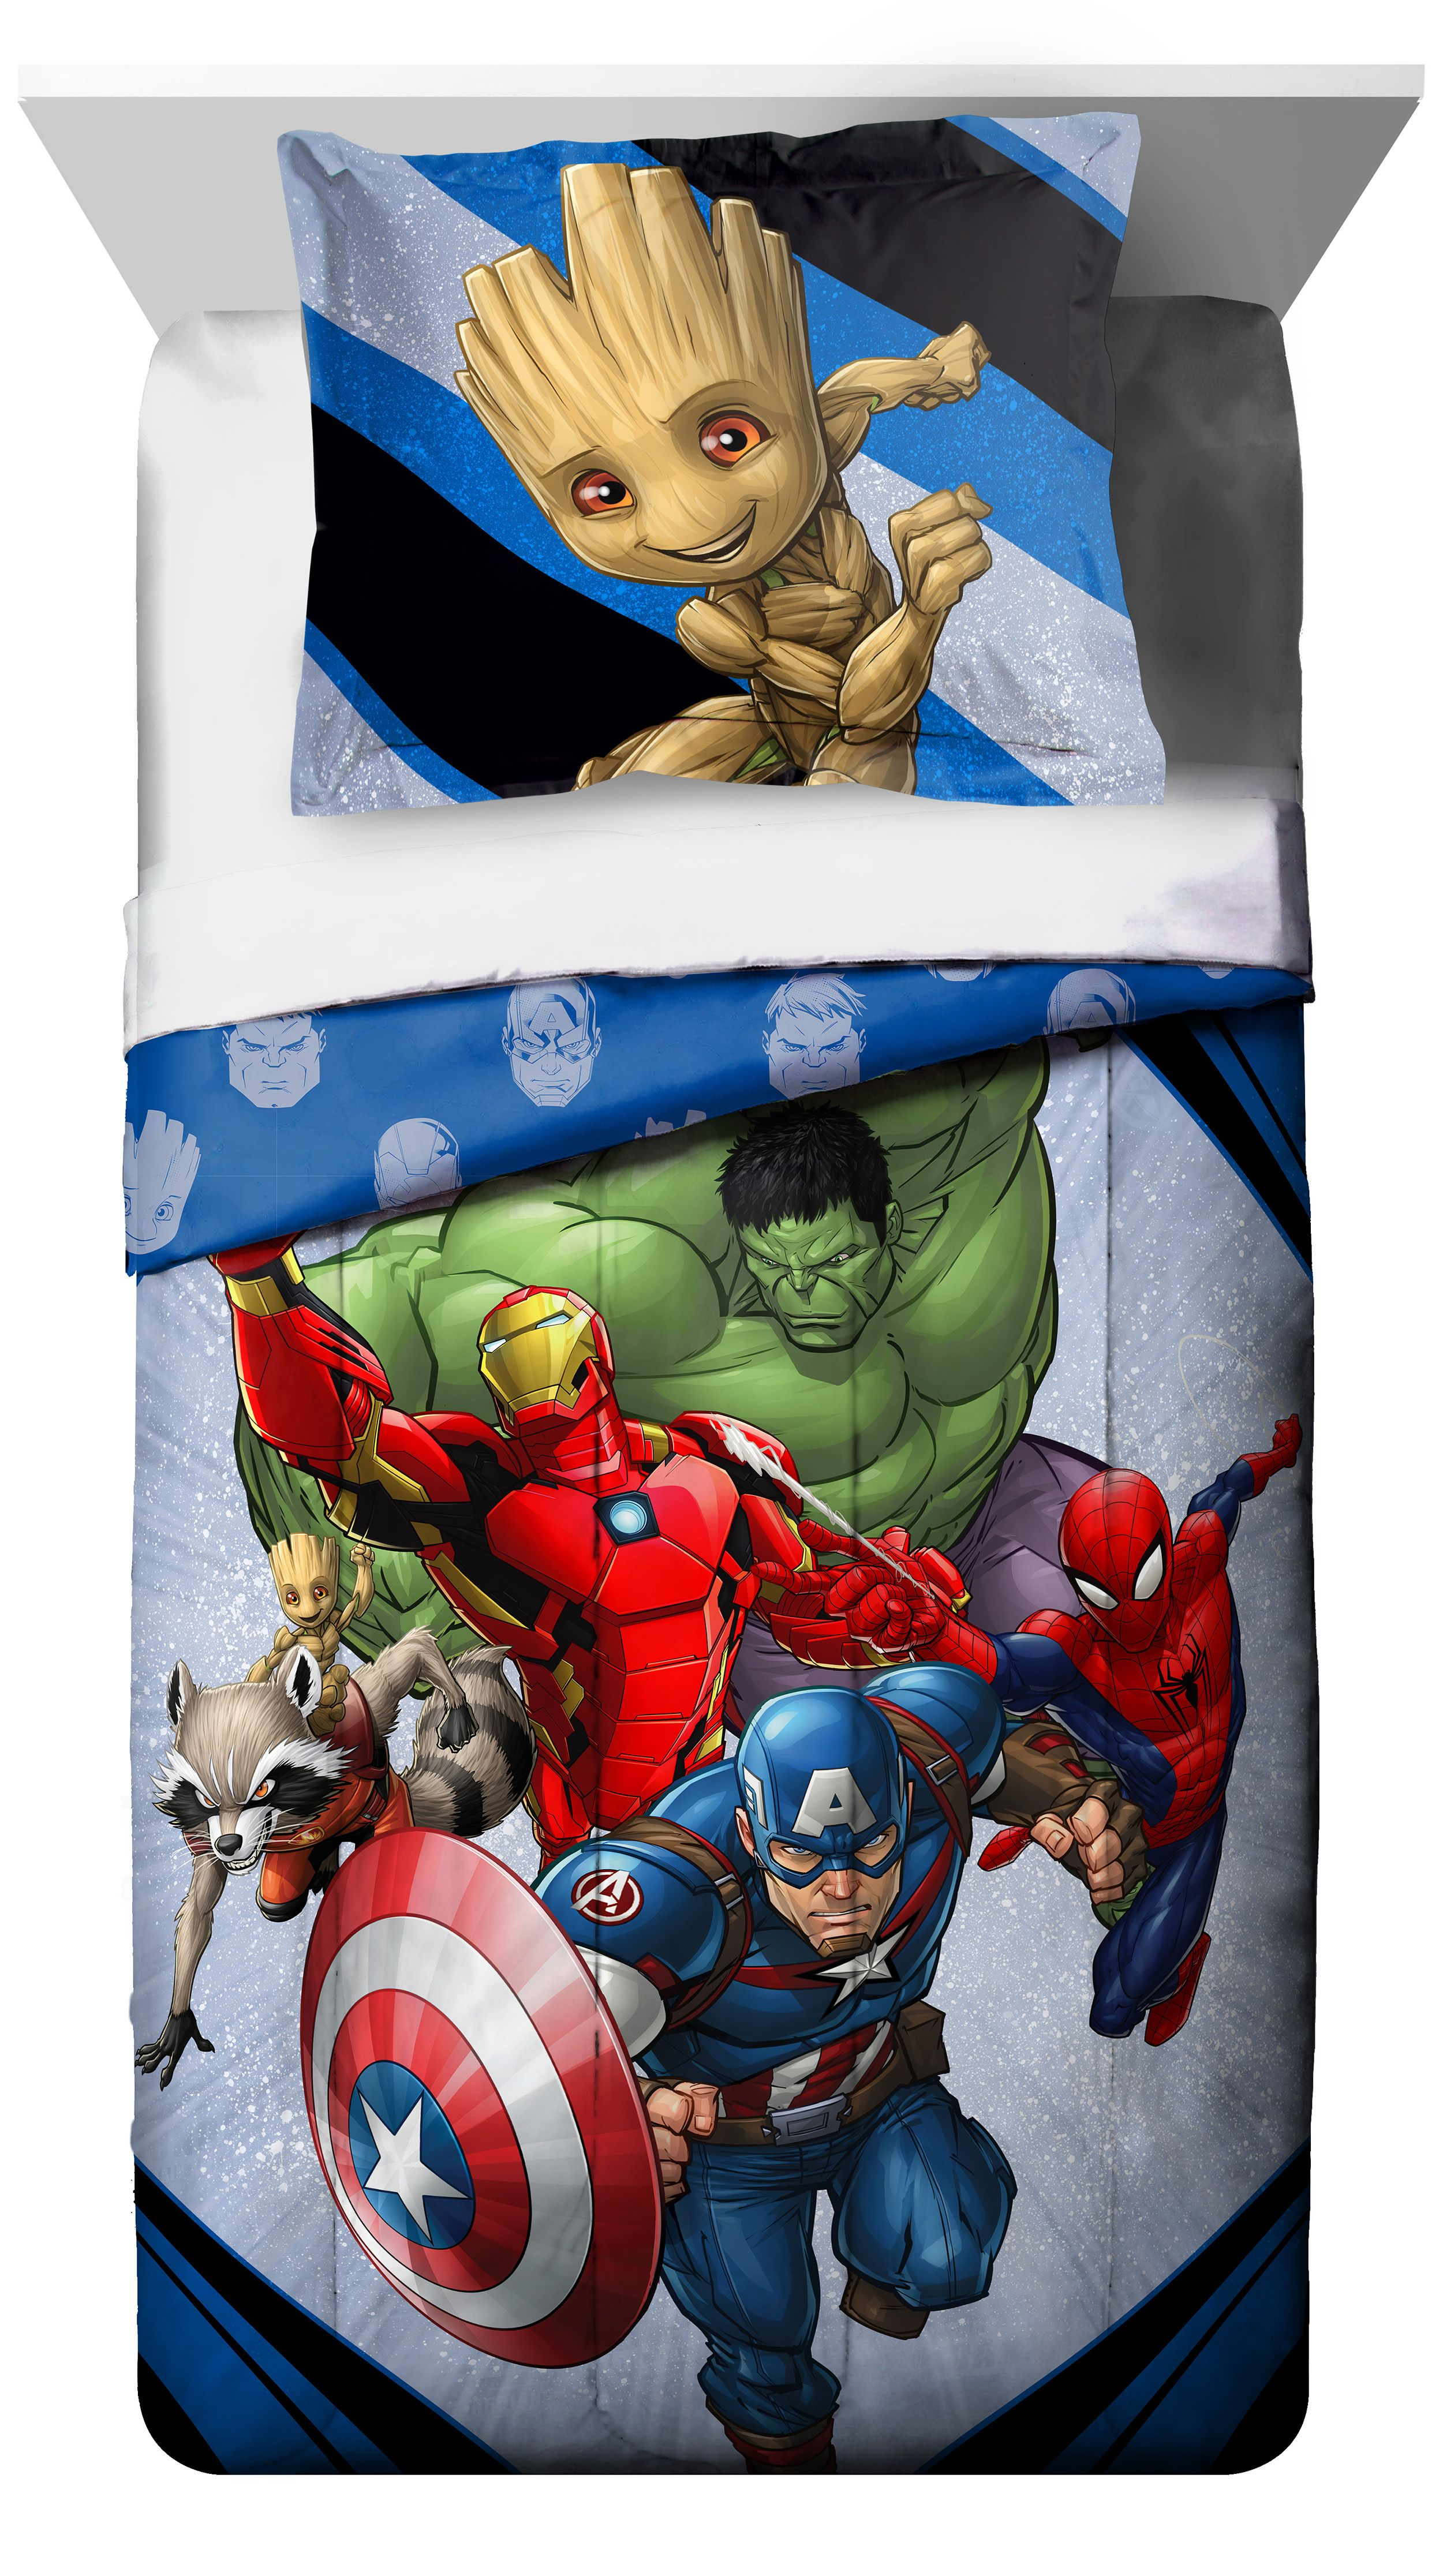 Marvel's Avengers 'Fight Club' 2 Piece Twin Full Comforter and Sham Set, Kid's Bedding by Jay Franco & Sons